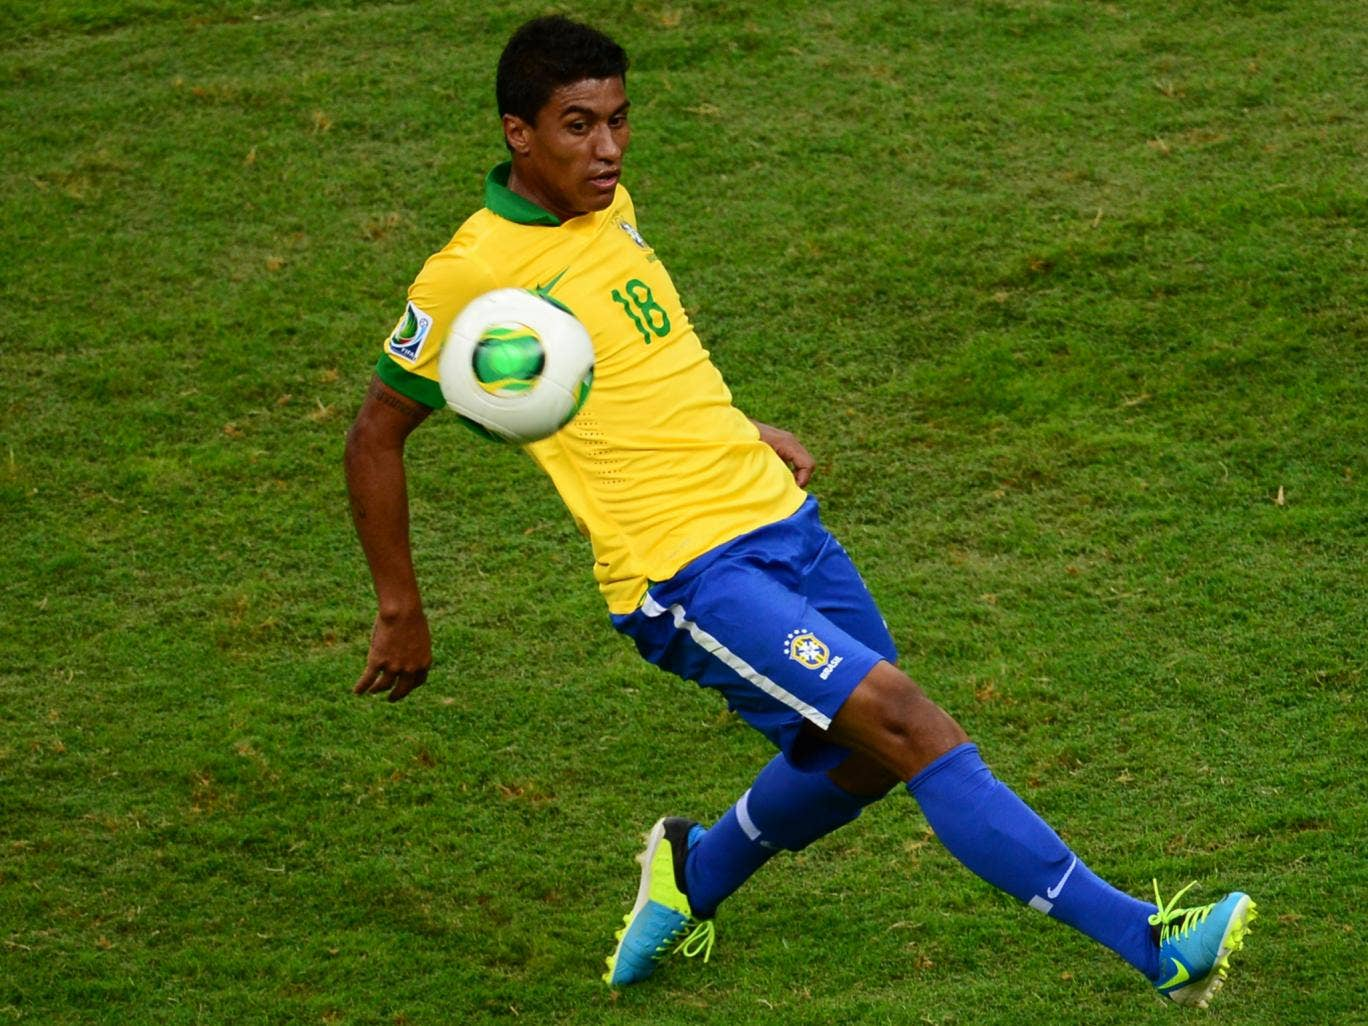 Brazilian midfielder in action for Brazil at the Confederations Cup